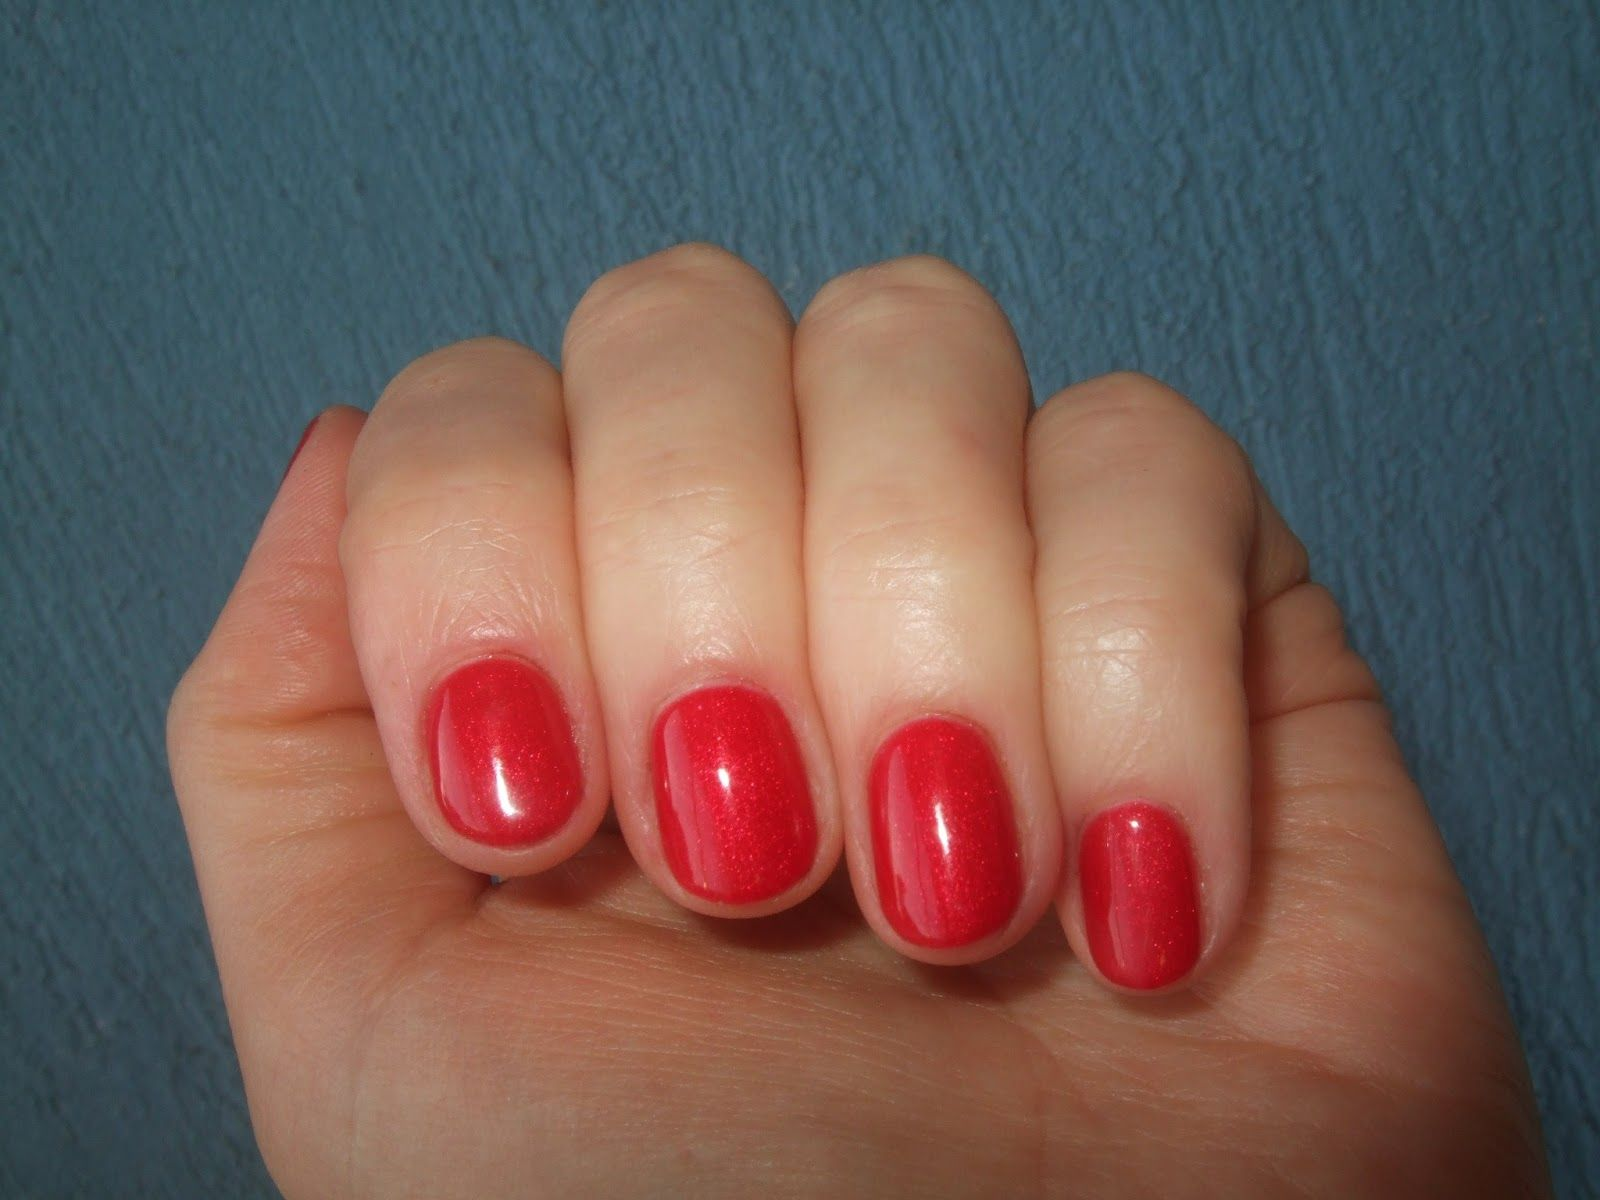 Ezflow Trugel in Racy Red | Nails | Pinterest